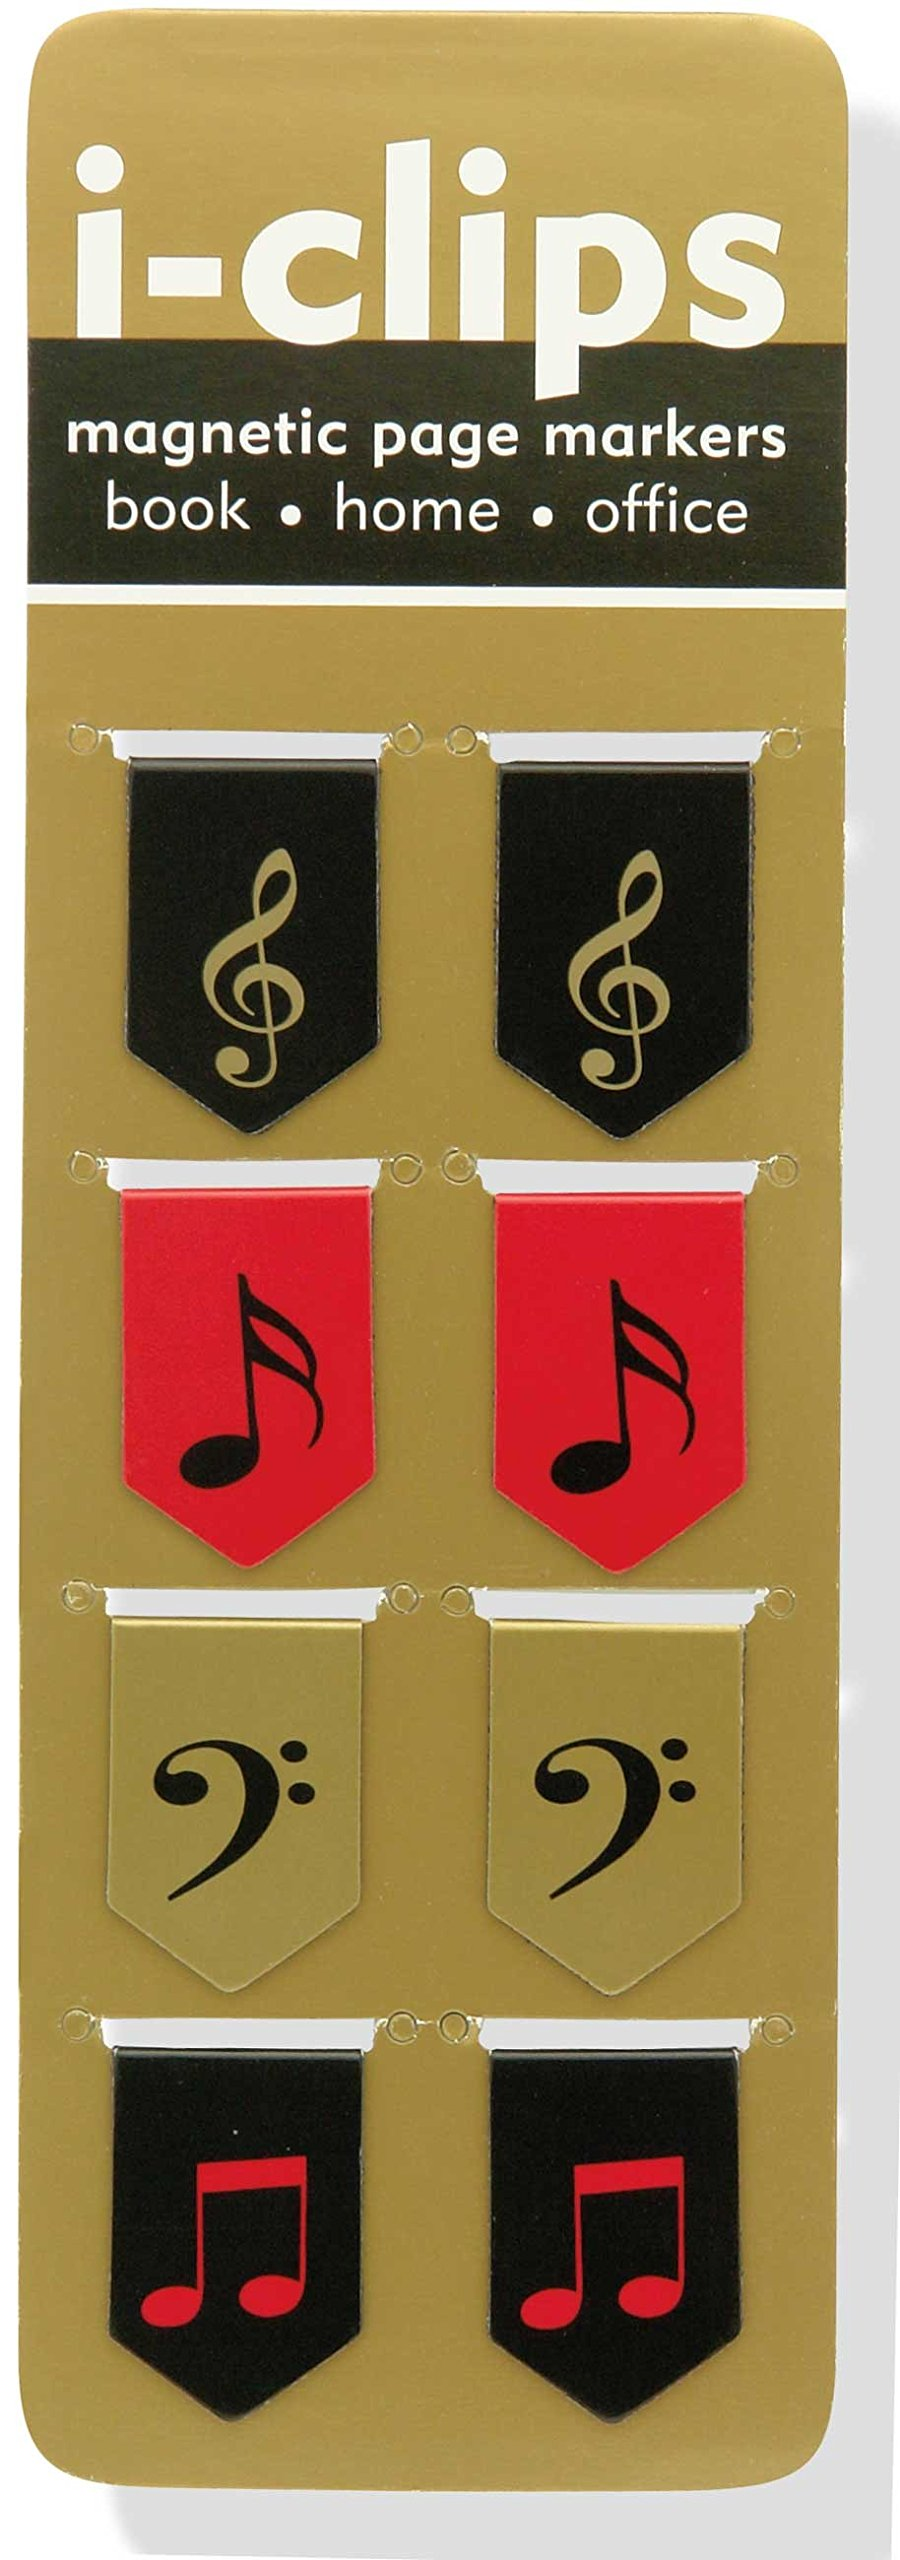 music-i-clips-magnetic-page-markers